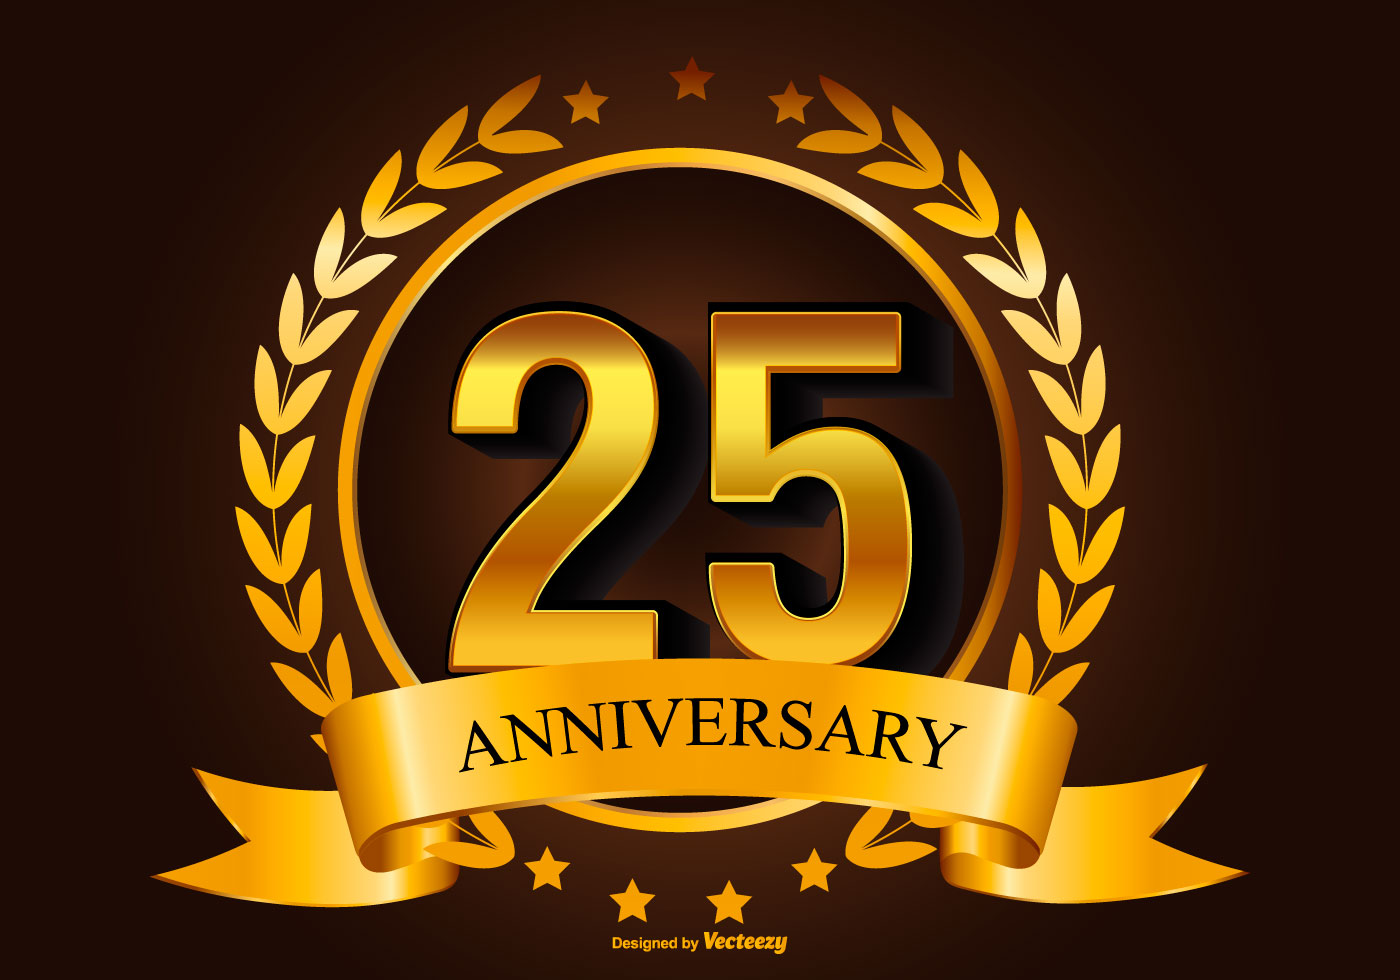 25th anniversary free vector art  1368 free downloads 25th Anniversary Frame 25th Anniversary Graphics